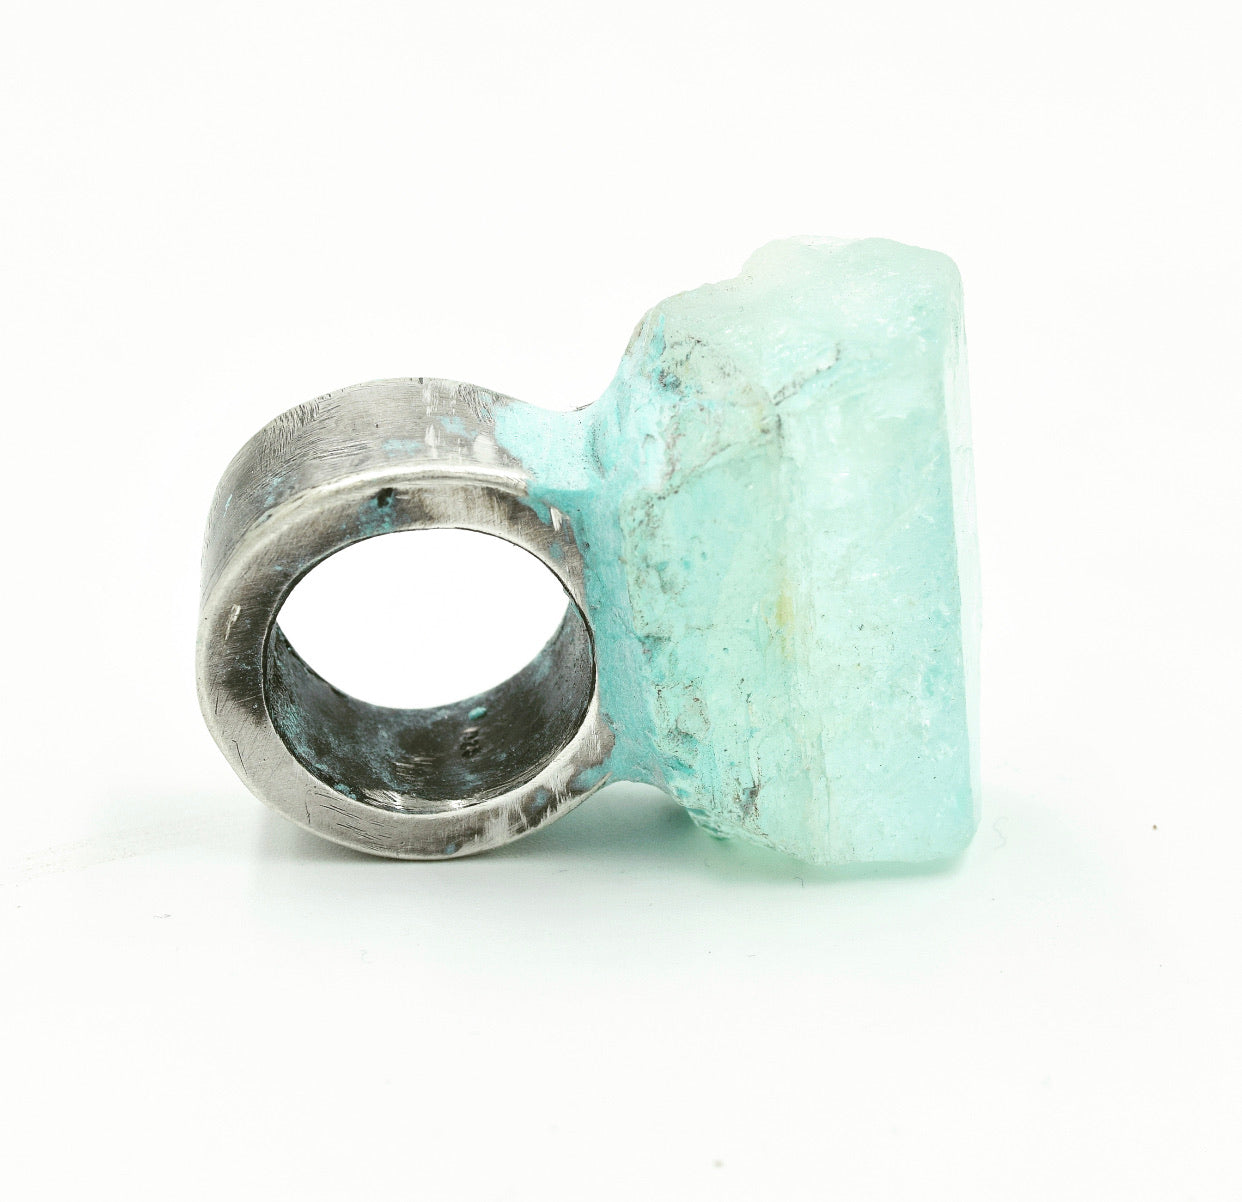 Jill Herlands Sterling Silver and Aquamarine Ring